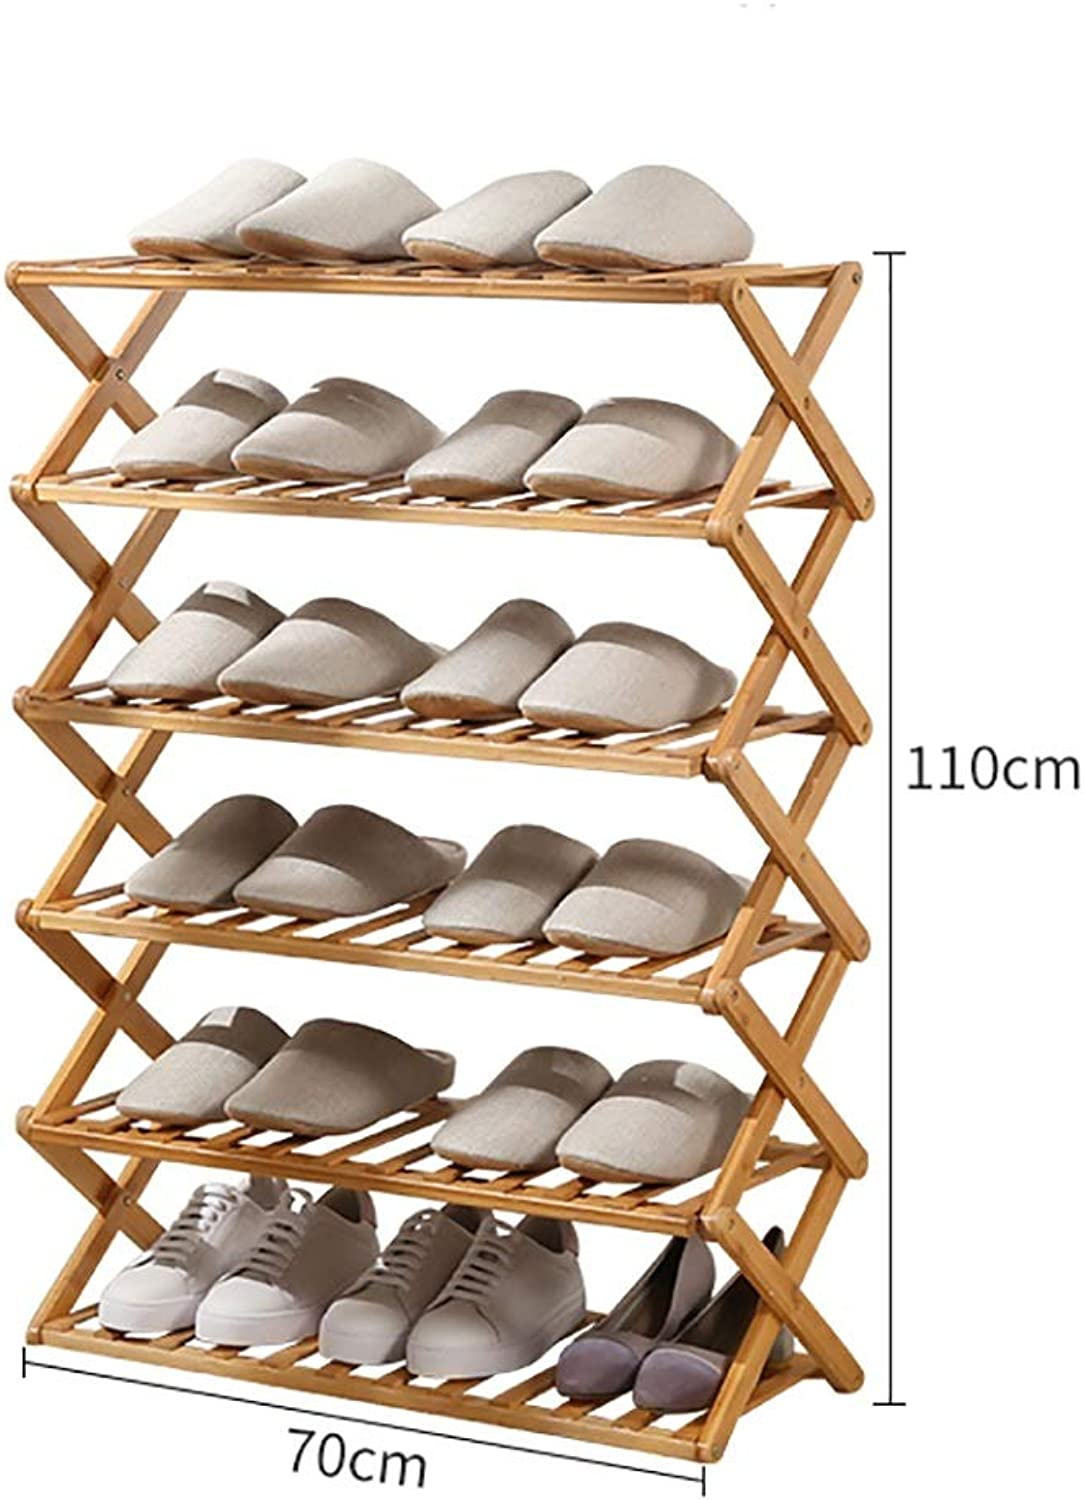 3,4,5,6-Layer shoes Rack Shelf Flower Stand Bookshelf Storage Shelf shoes Cabinet Multifunction Household Doorway Entrance Space Saving Foldable (Size   70  25  110cm)